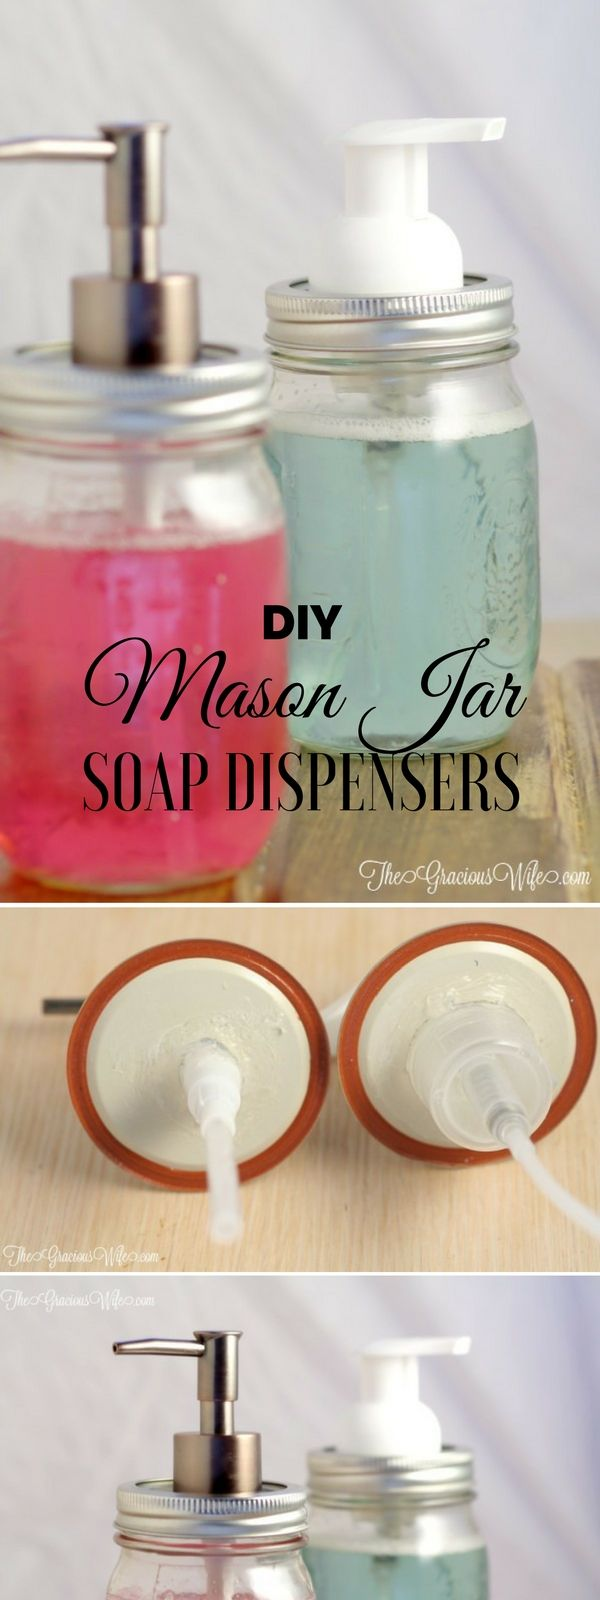 20 Most Awesome DIYs You Can Make with Mason Jars is part of Home Accessories Decor Mason Jars - Want to decorate your home with DIY crafts  Mason jars crafts are easy and you can complete them in a few hours  Here are 20 awesome and creative ideas